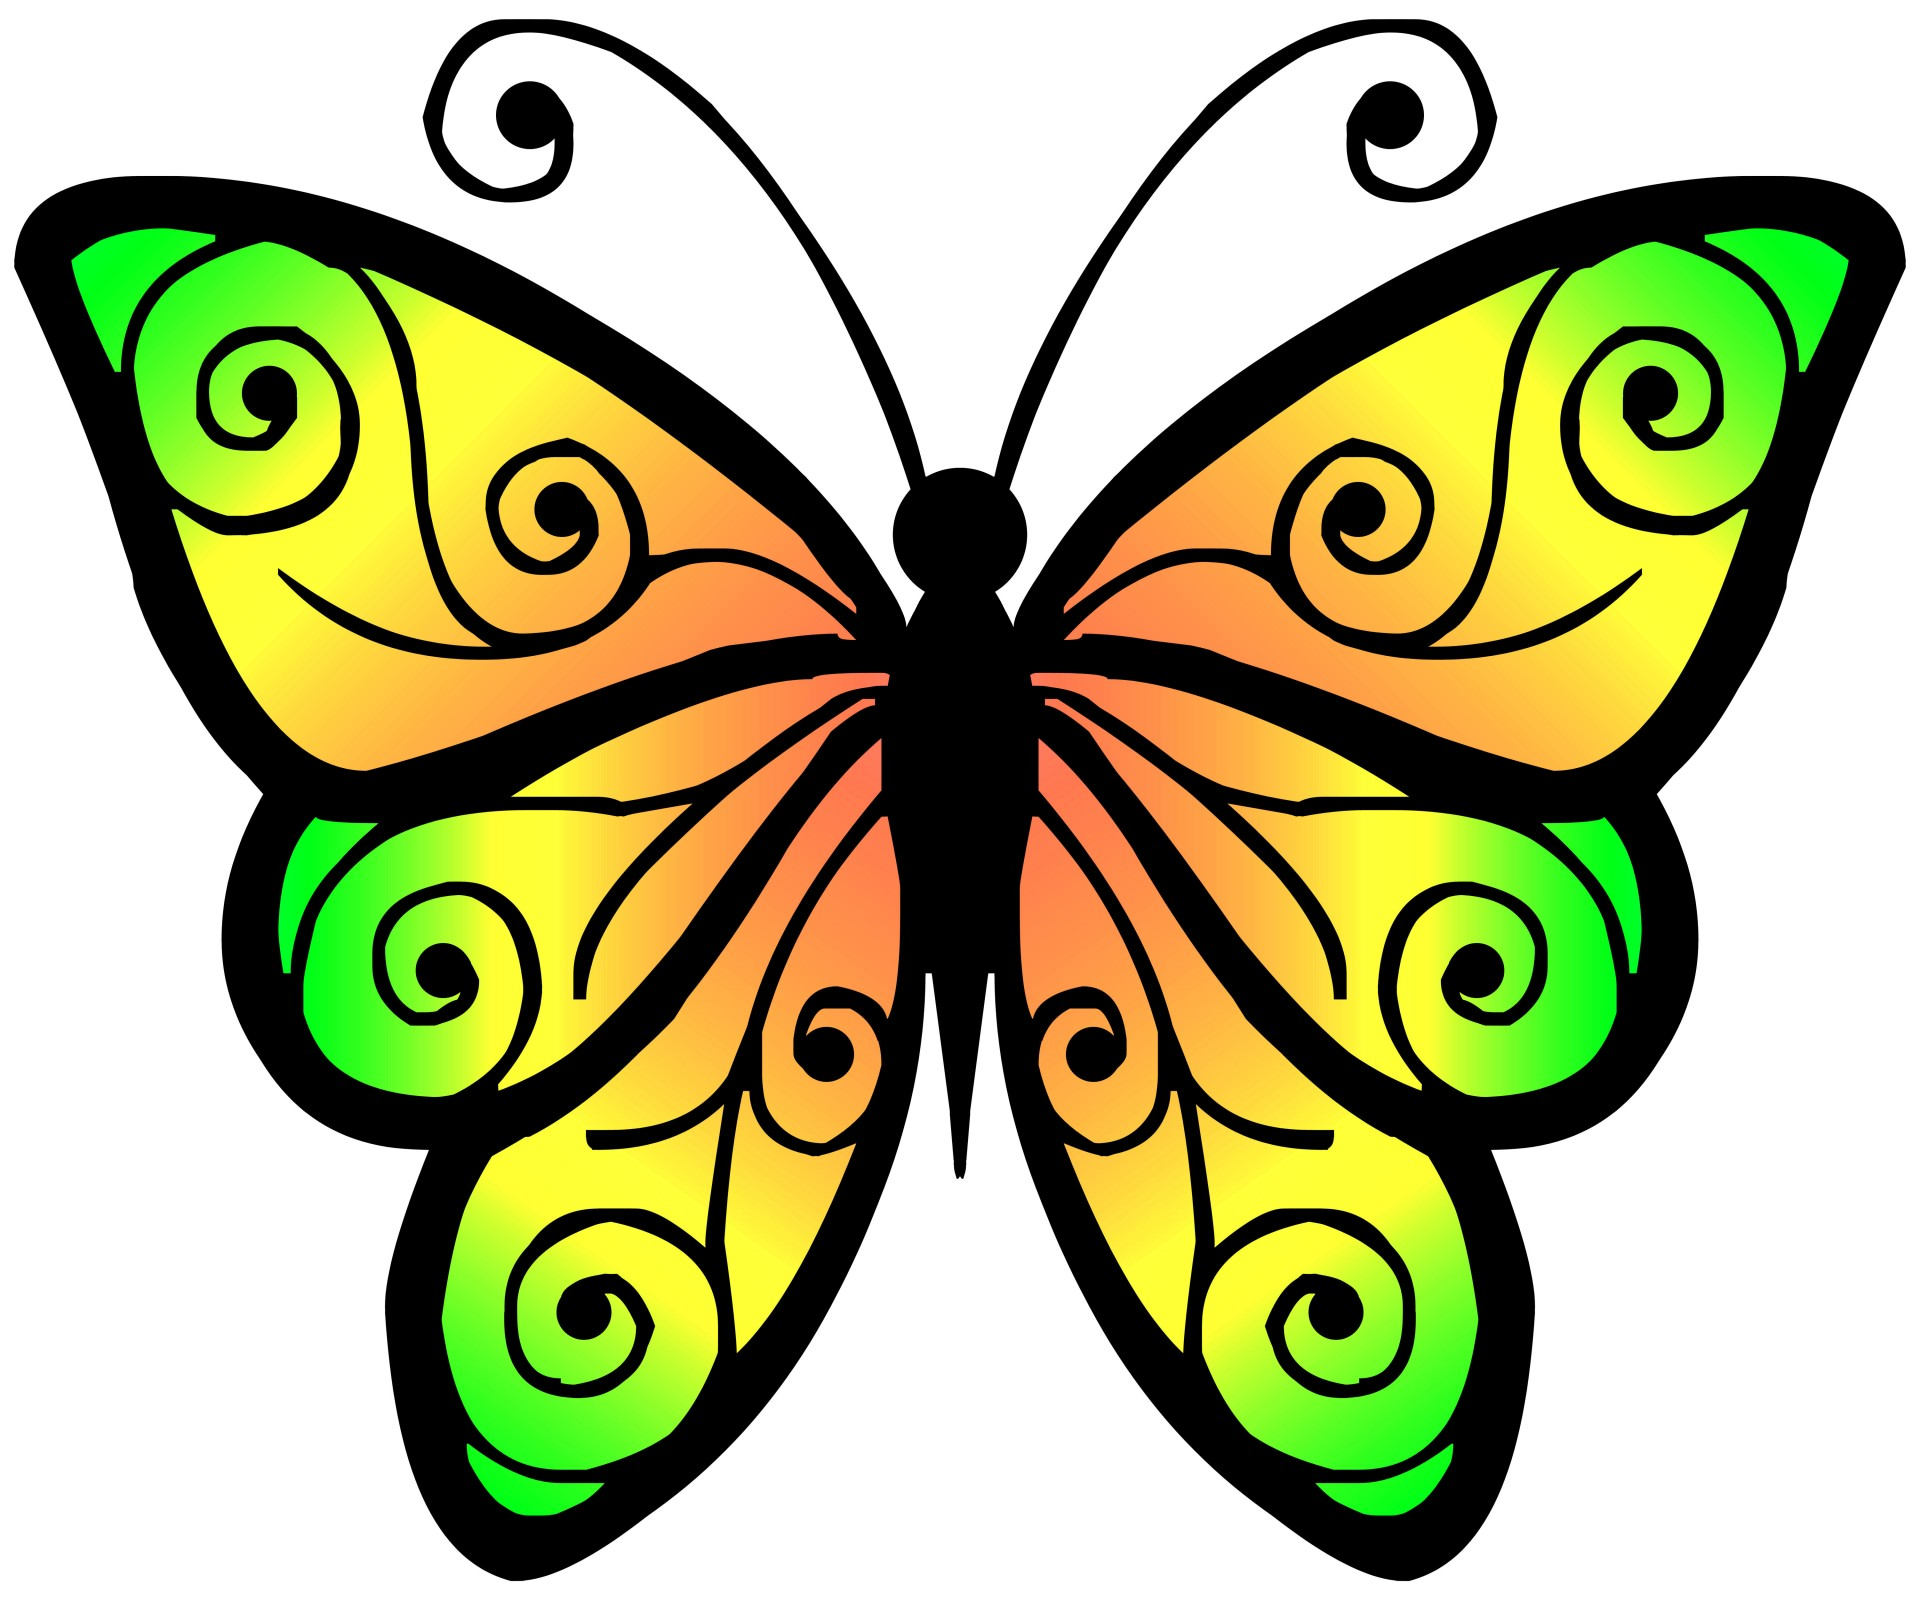 Butterfly clipart. Free stock photo public download